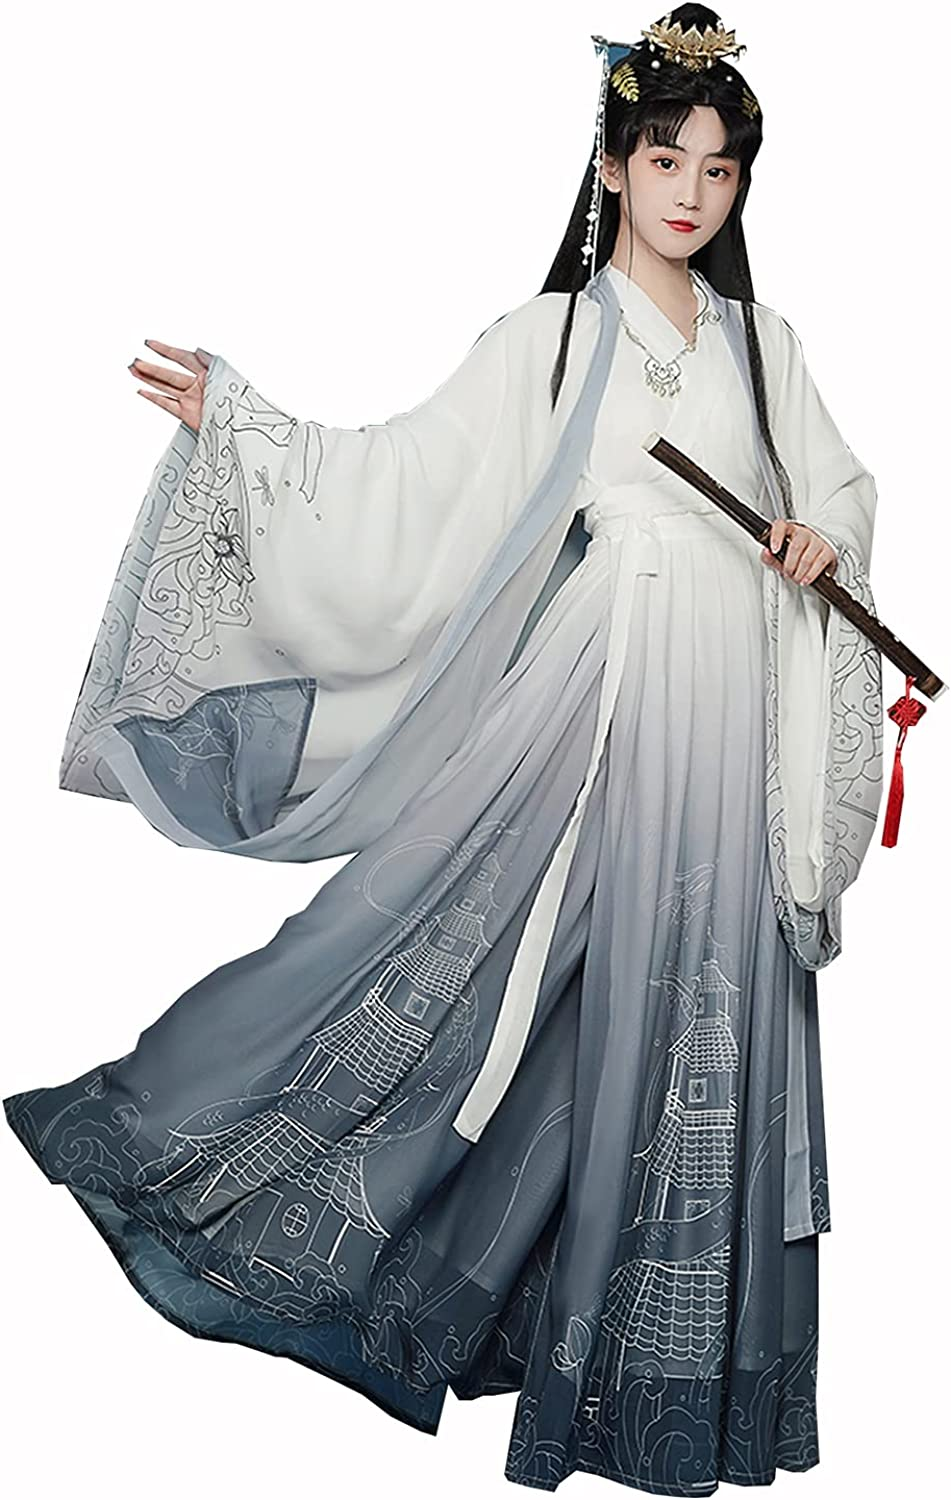 trend rank Industry No. 1 Hanfu Women's Traditional Dress Outf Skirt Costume Chinese